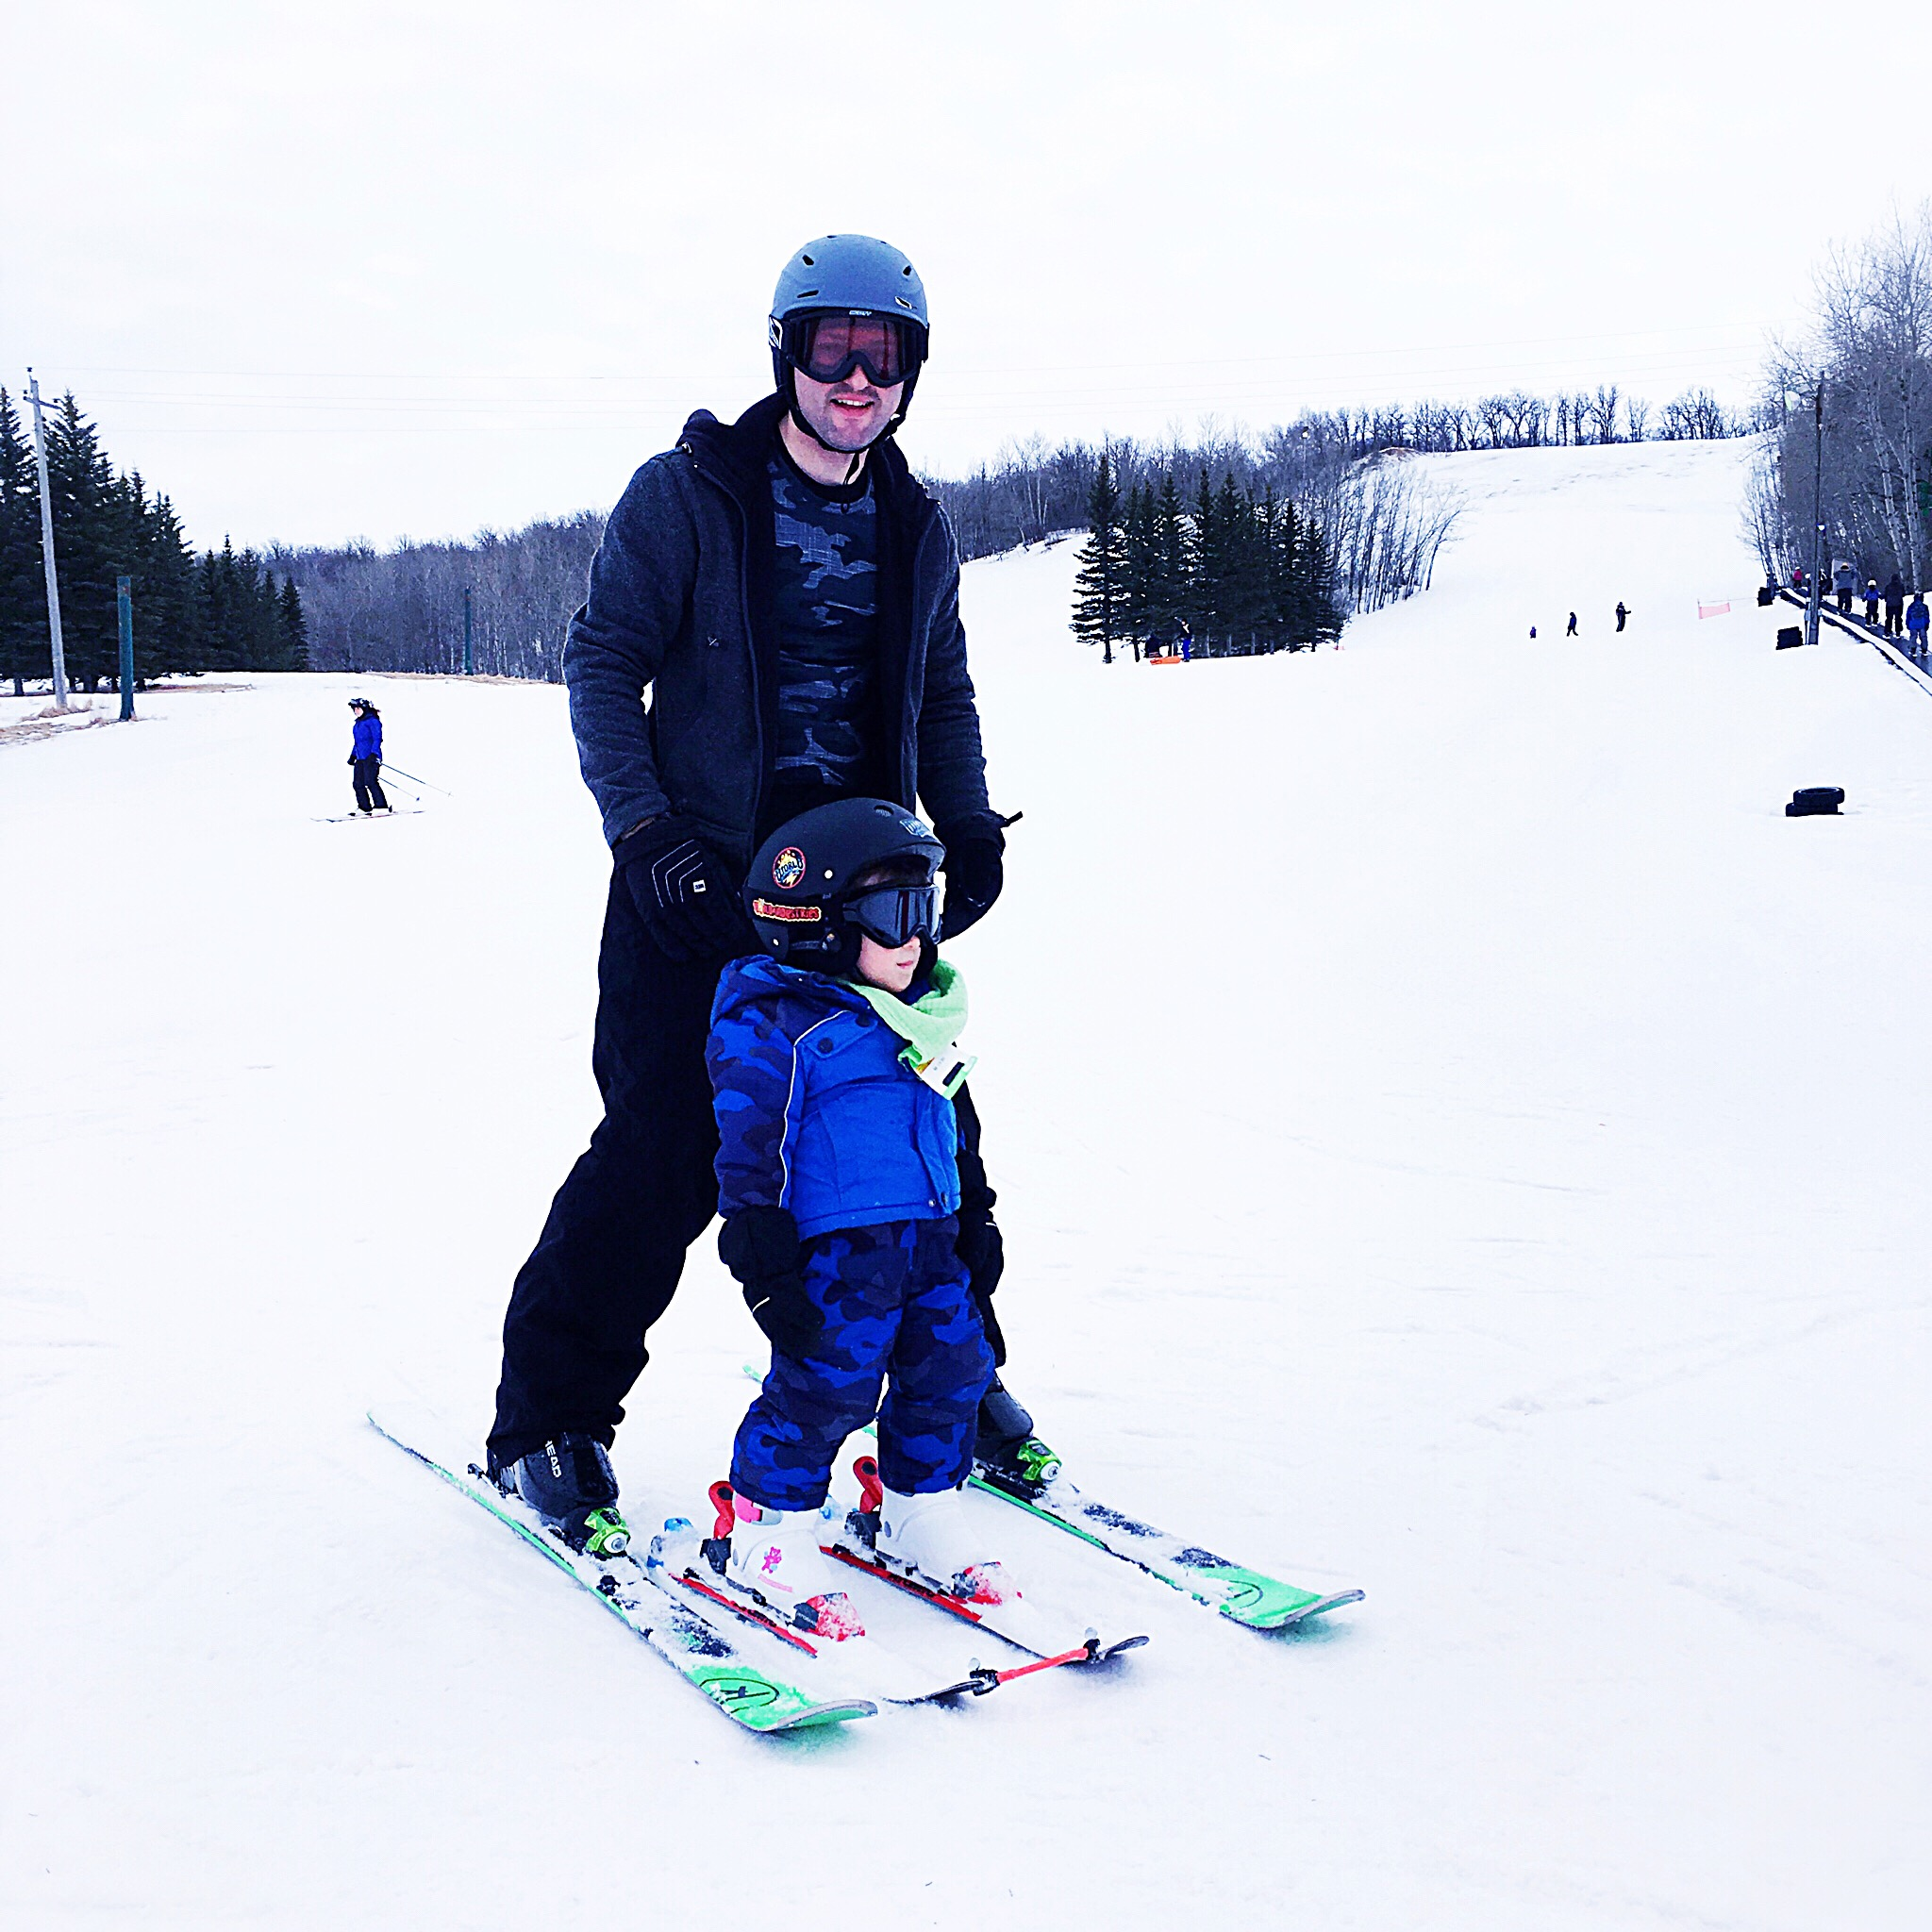 Proud Father and his tiny skier.